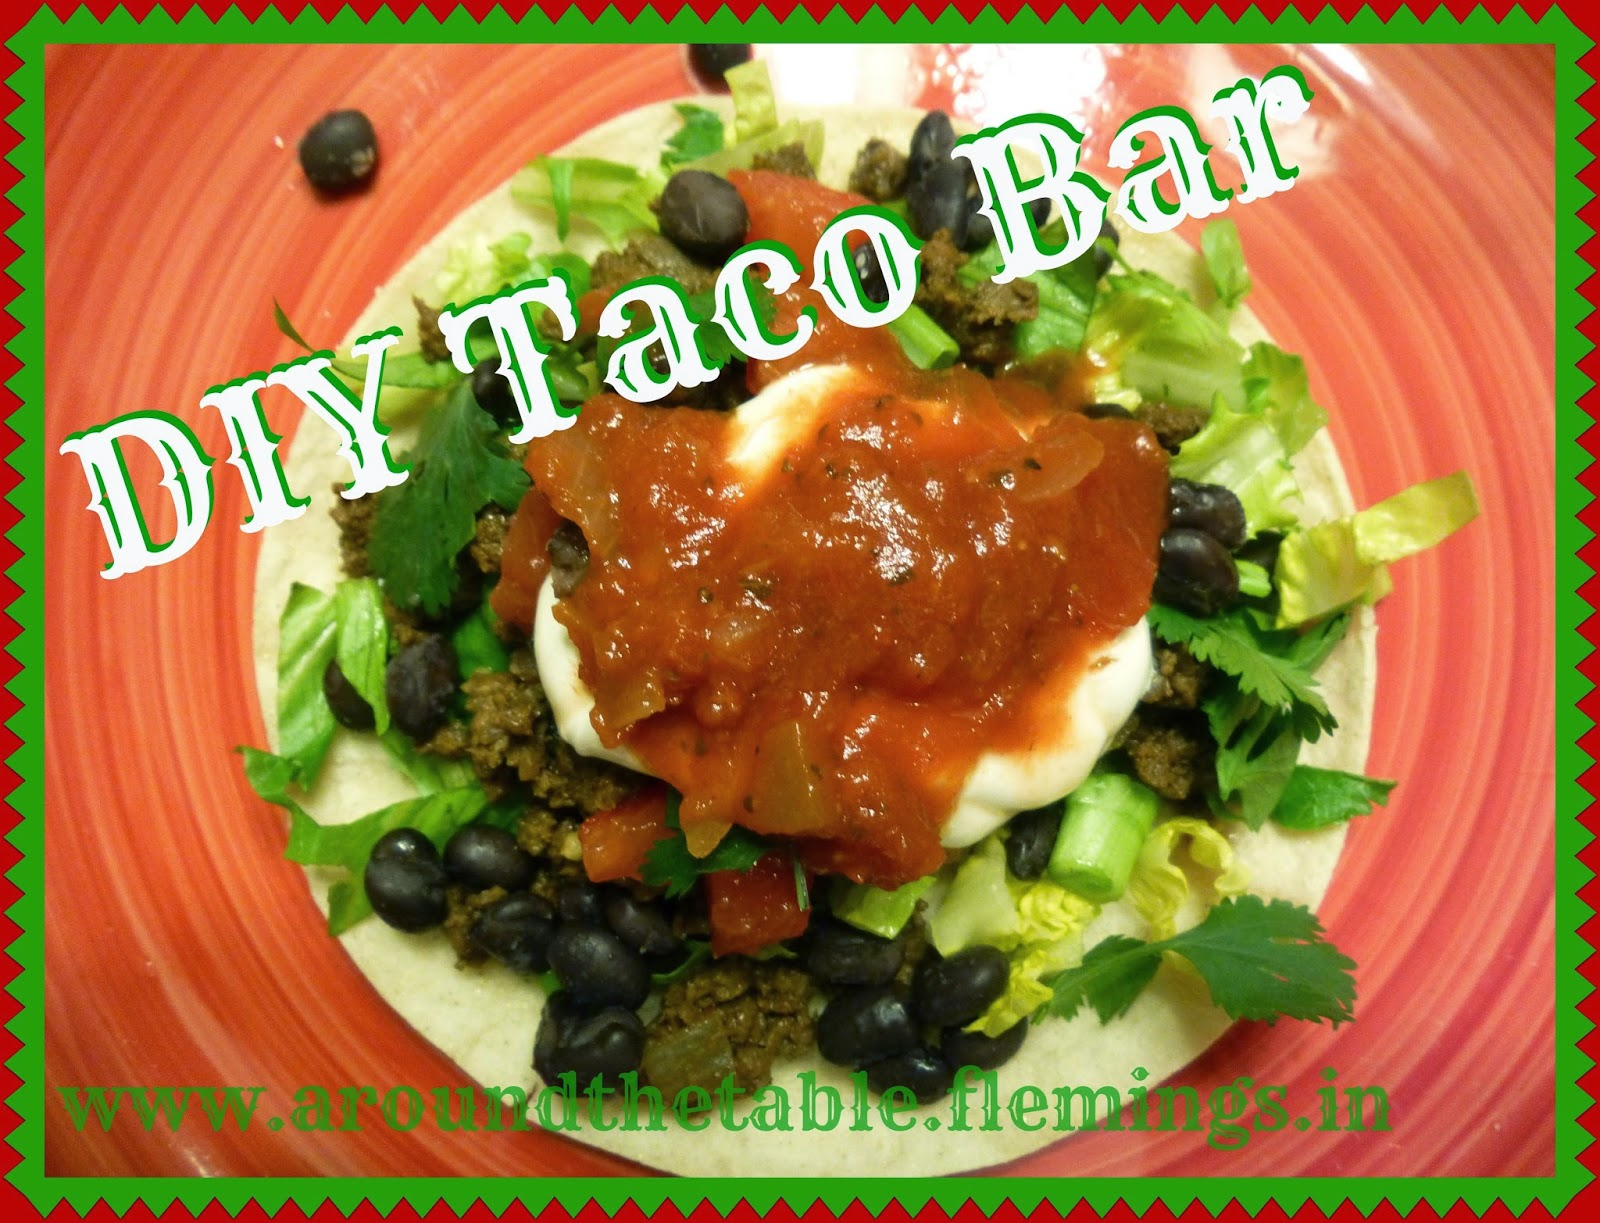 DIY Taco Bar for a quick healthy meal idea